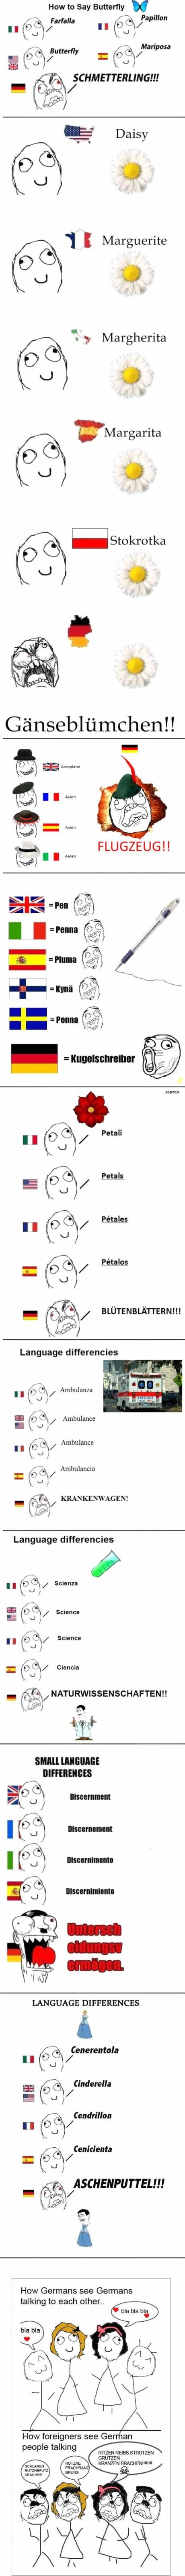 German is my second language to learn after english and it's so true